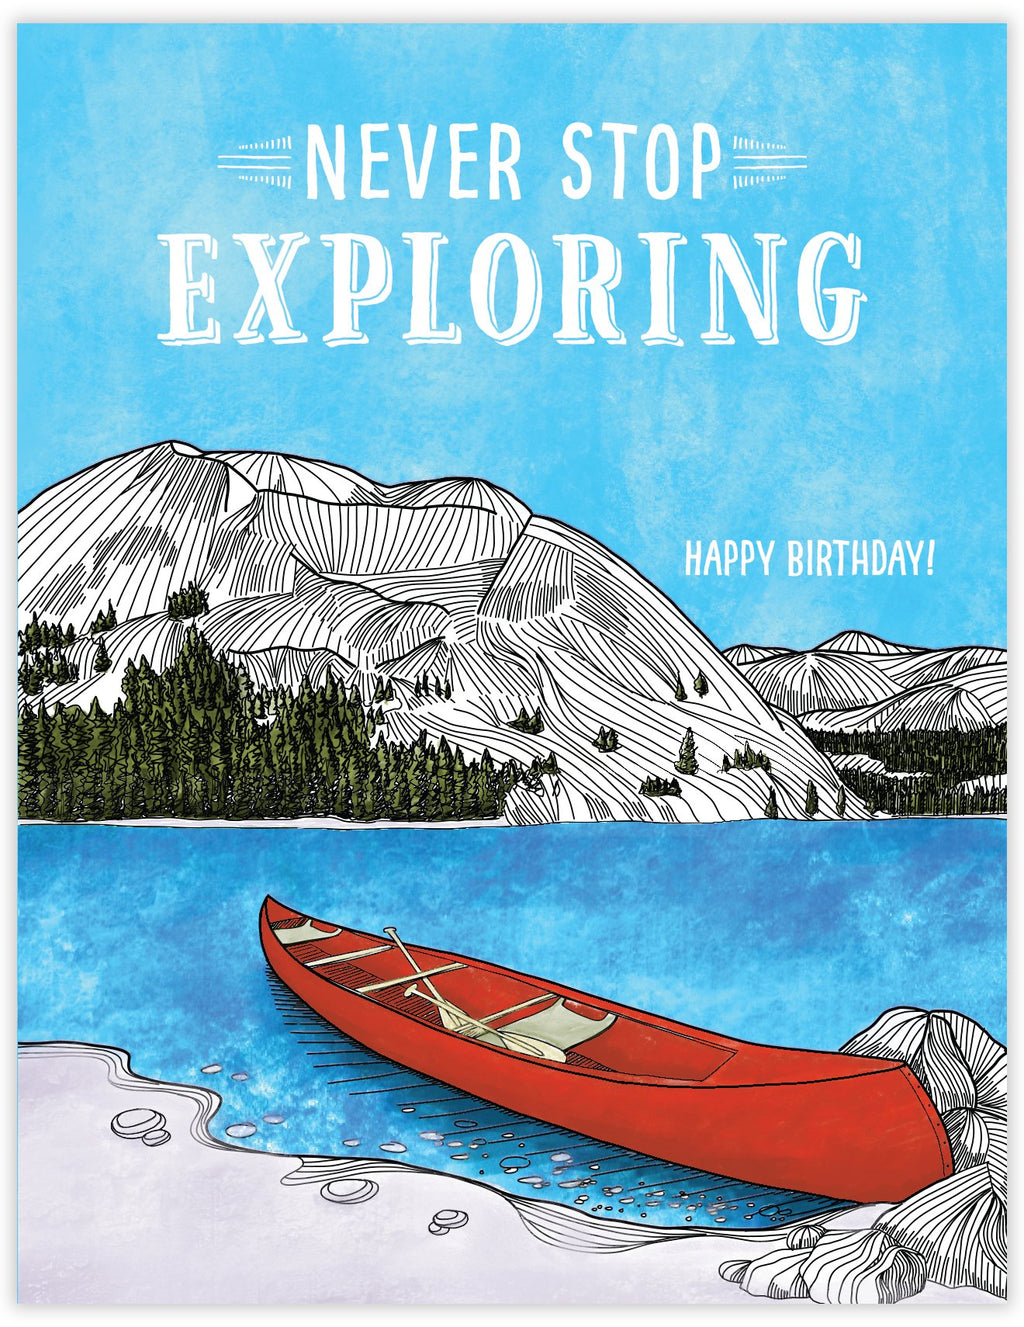 Never Stop Exploring Kayak Birthday Card